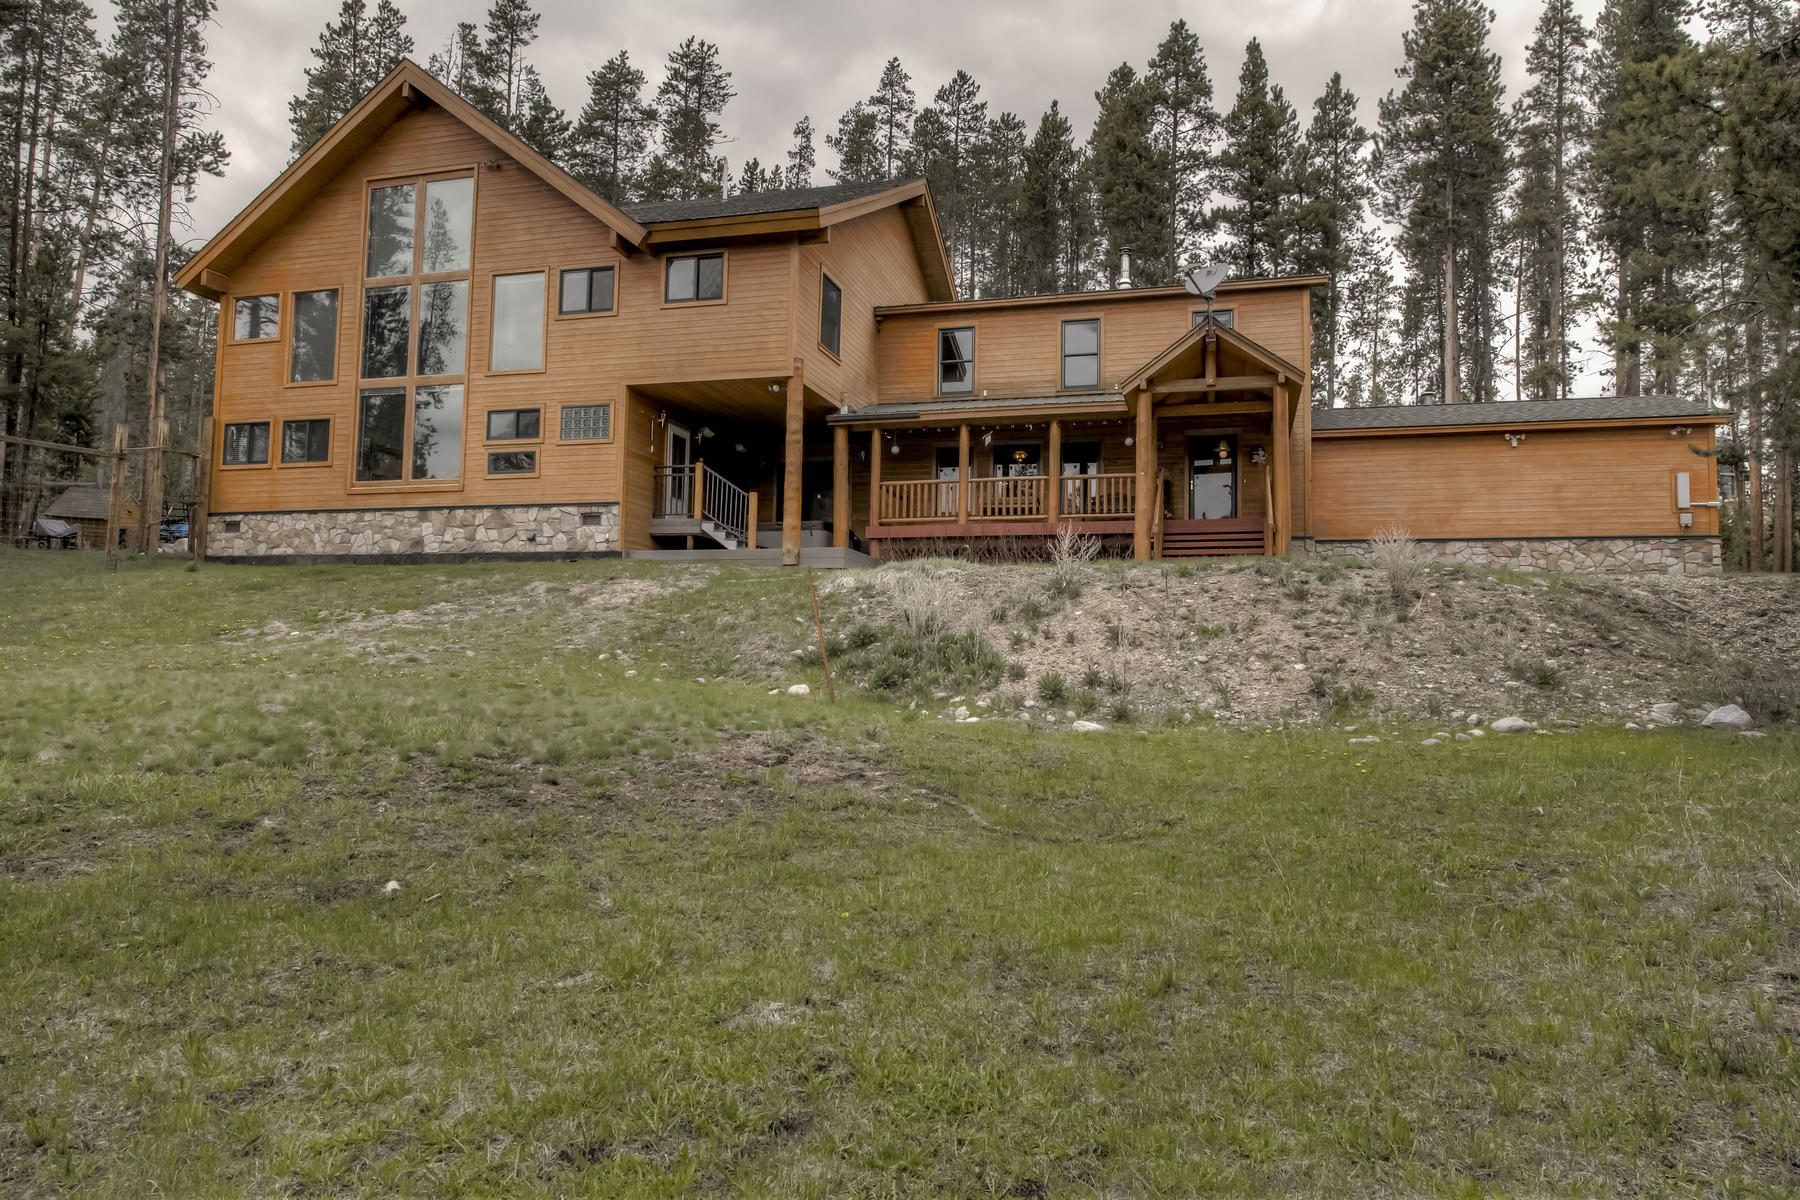 Single Family Homes for Sale at 13 Acre Treed Lot with Lake Views 222 GCR 466, Grand Lake, Colorado 80447 United States